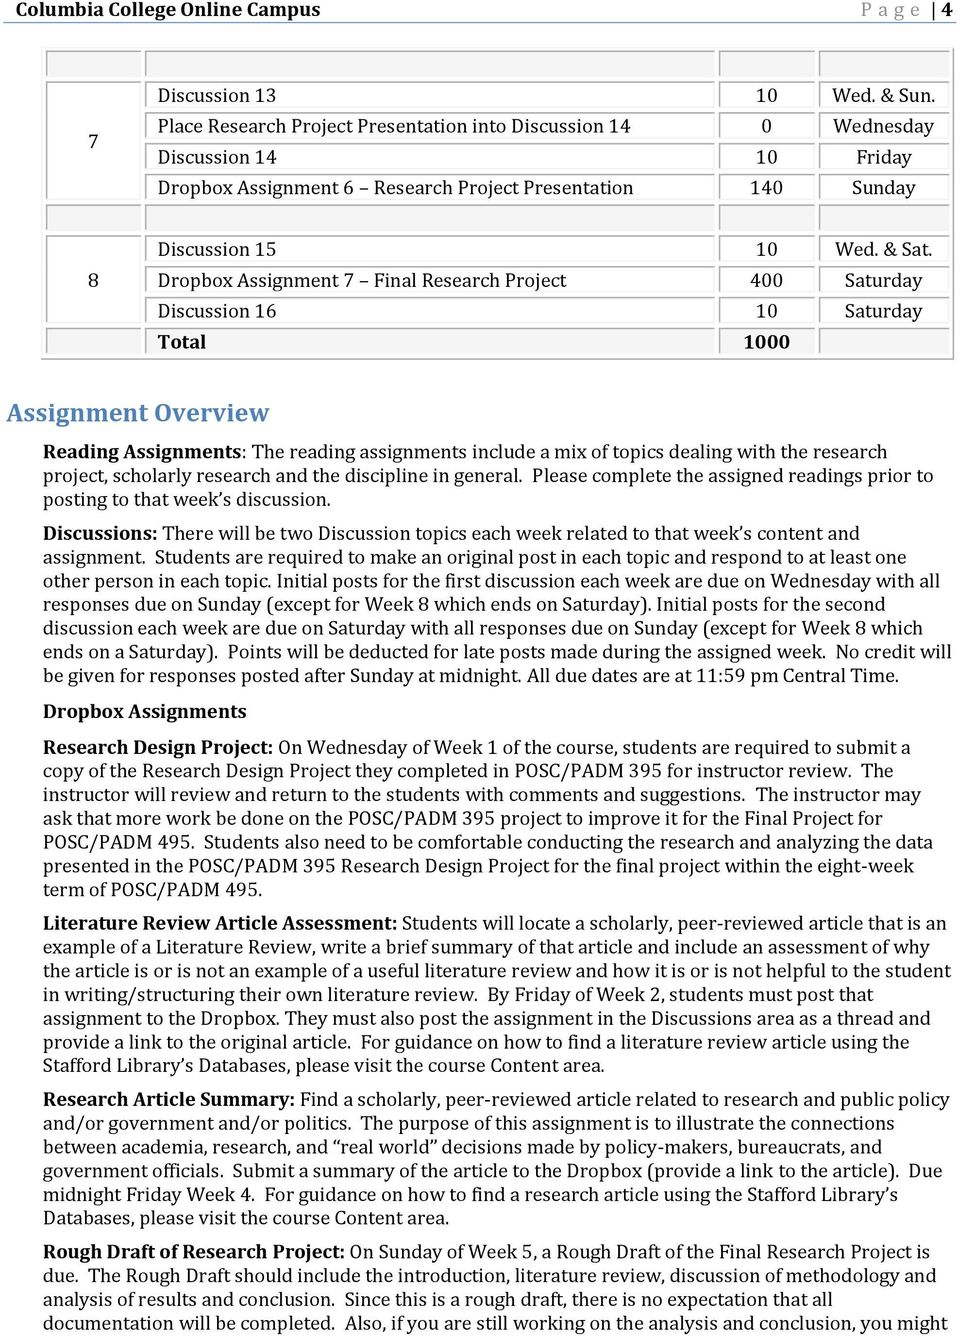 Dropbox Assignment 7 Final Research Project 400 Saturday Discussion 16 10 Saturday Total 1000 Assignment Overview Reading Assignments: The reading assignments include a mix of topics dealing with the